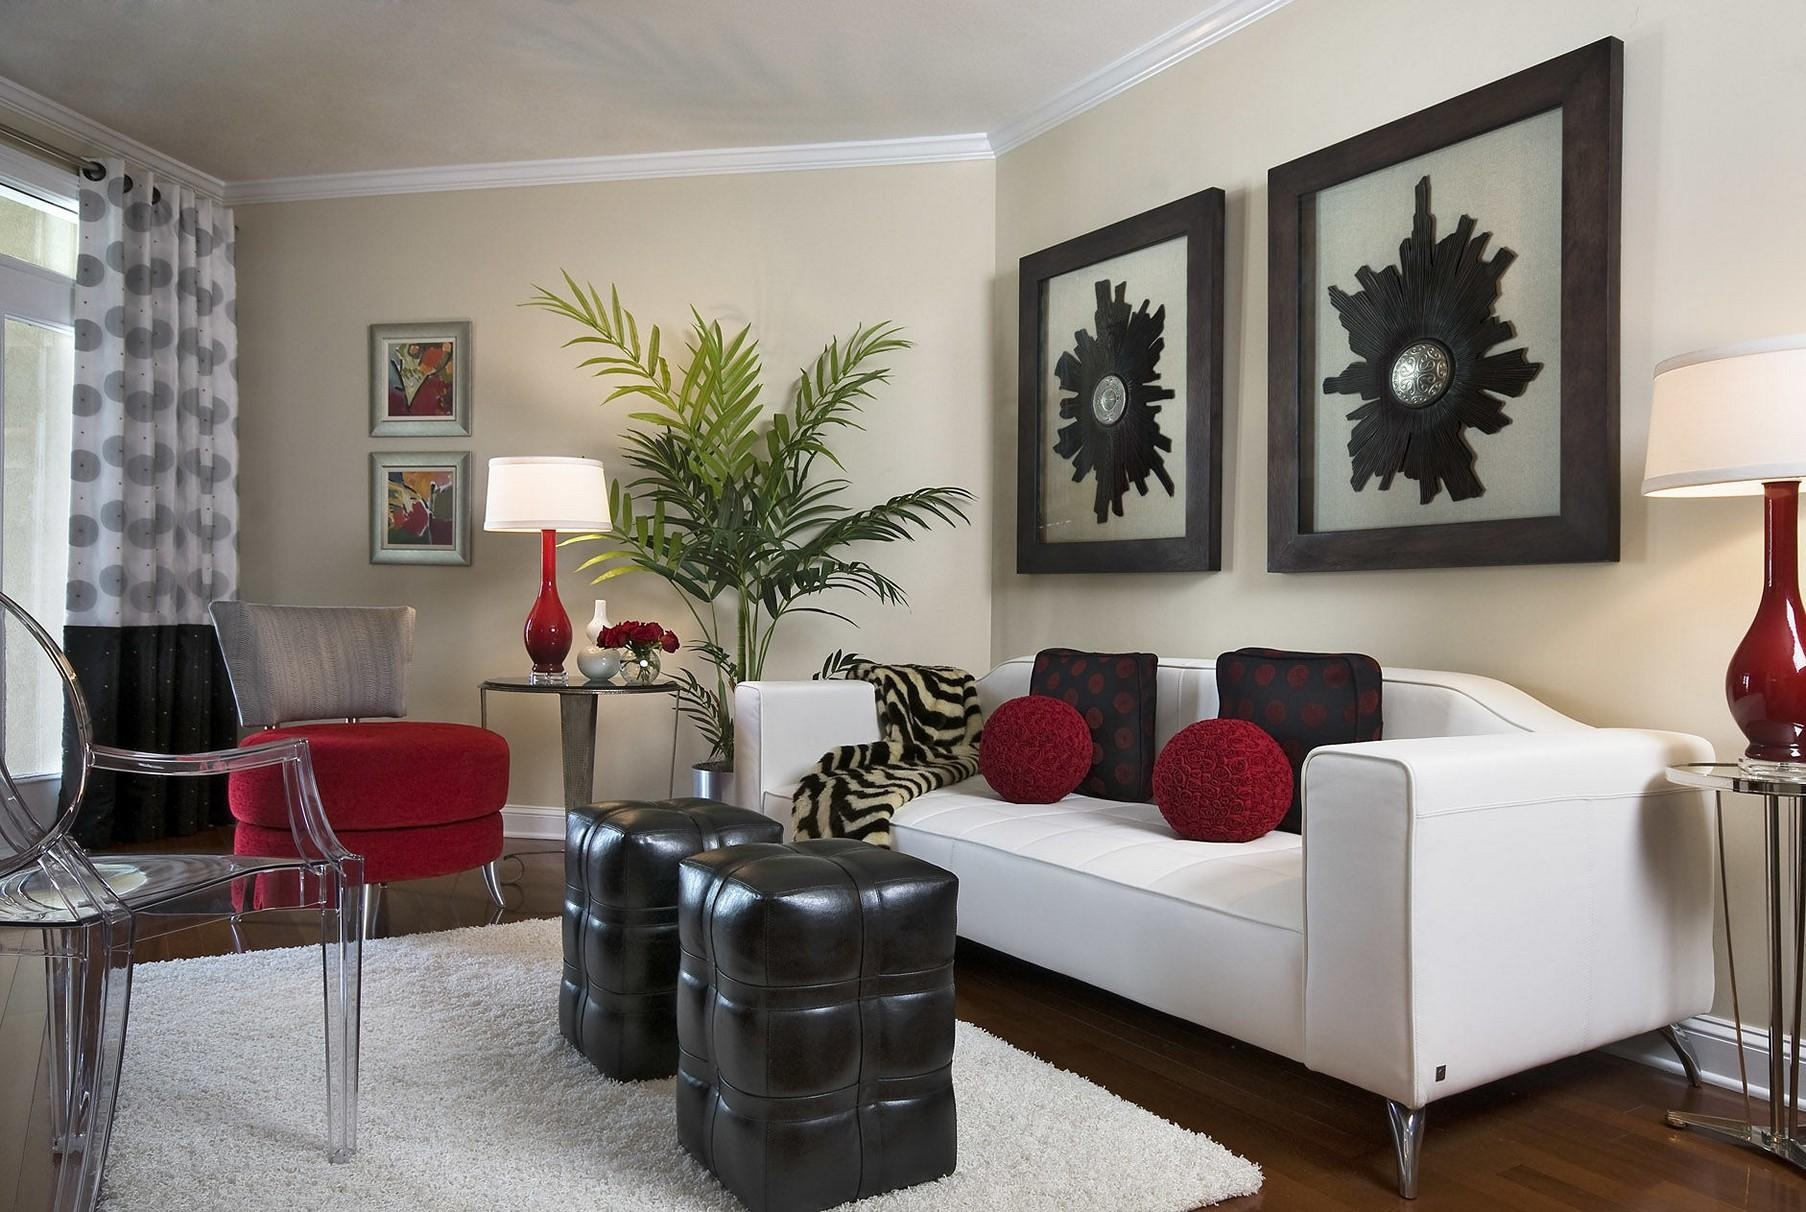 Wall Art For The Living Room – Modern House With Wall Art For Living Room (Image 19 of 20)